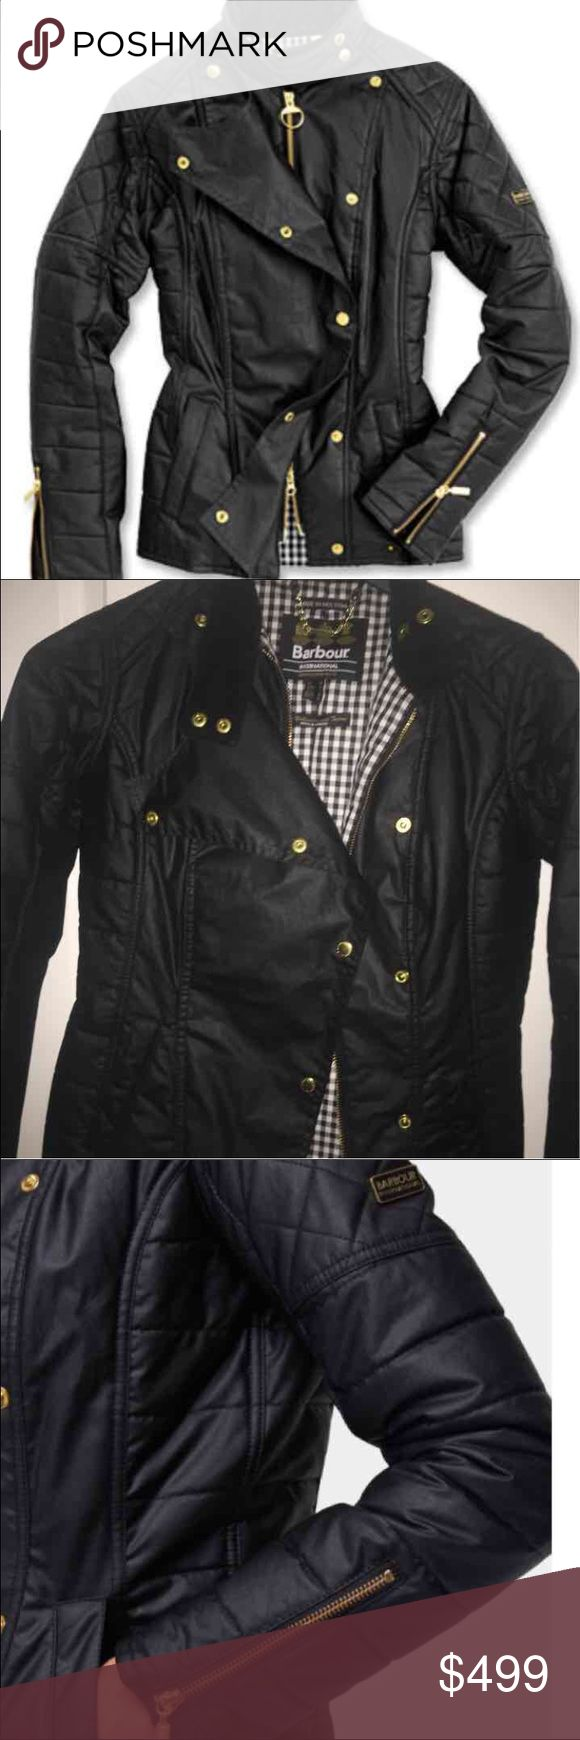 Sold Out Barbour Jacket Gorgeous Barbour jacket retails $700, brand new. Barbour Jackets & Coats Utility Jackets